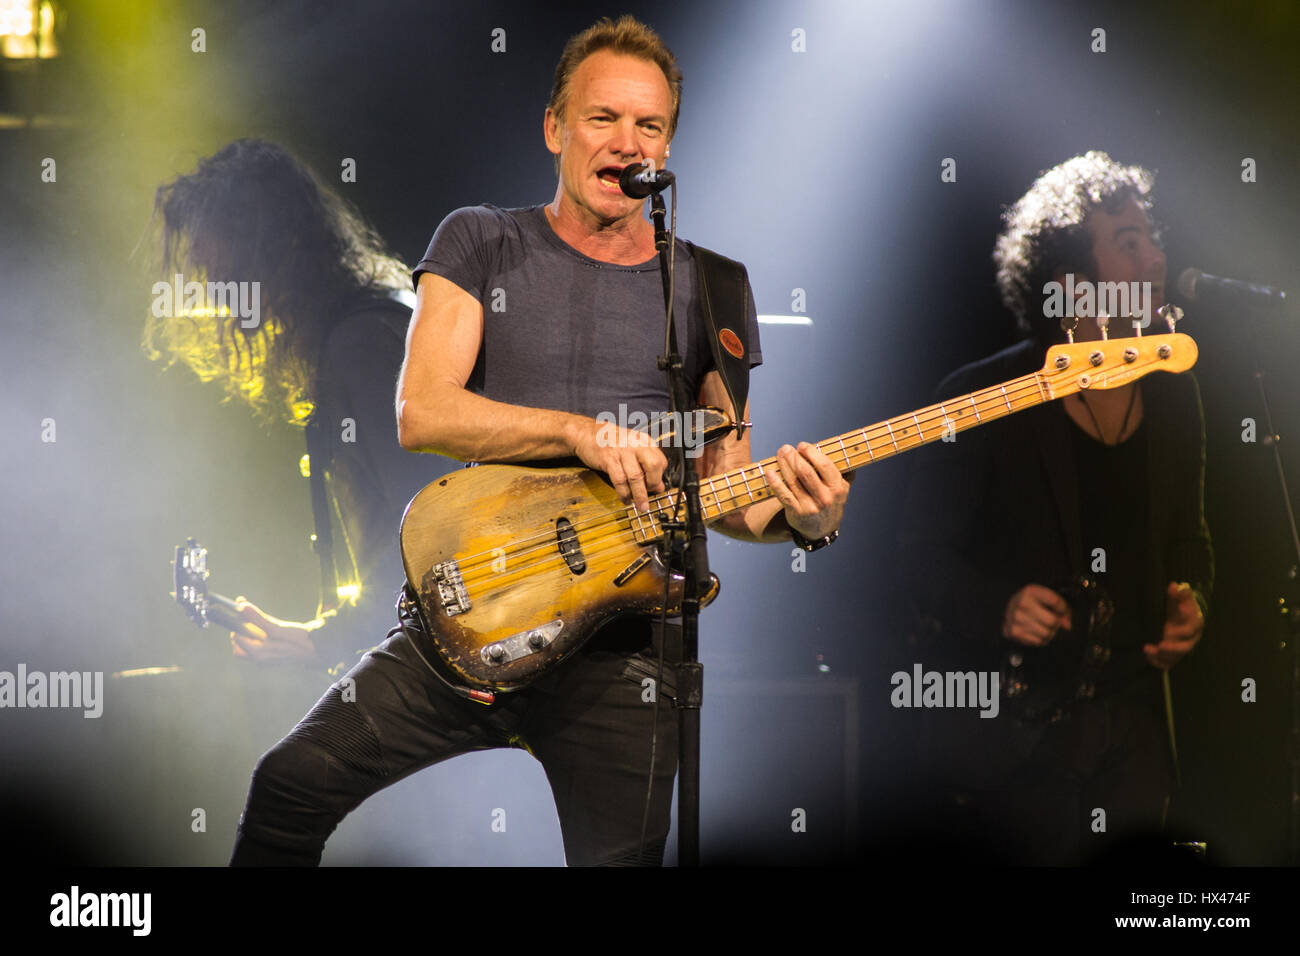 Milan Italy. 23th March 2017. The English singer-songwriter and actor STING performs live on stage at Fabrique during - Stock Image